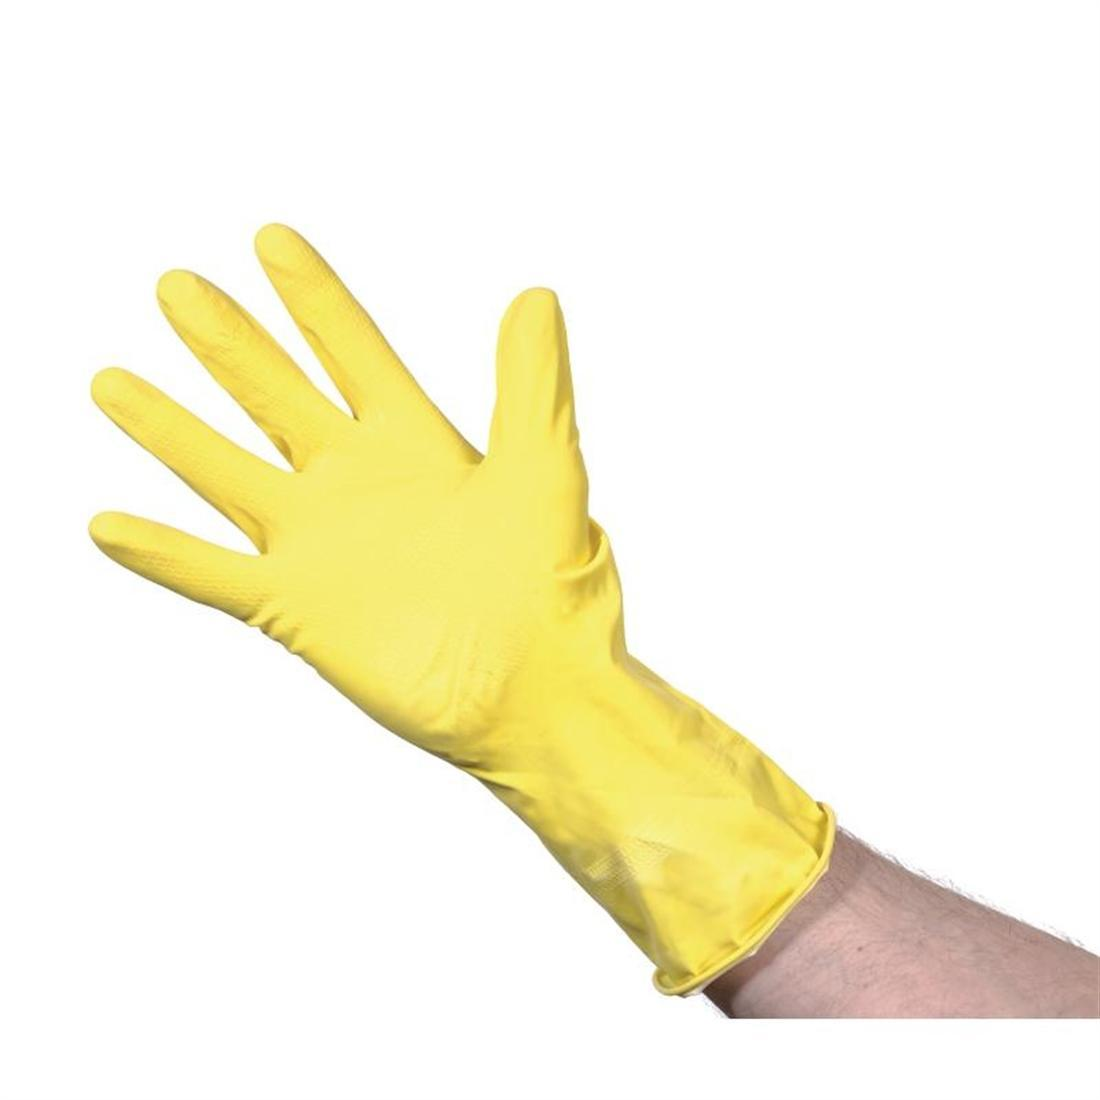 Jantex Household Glove Yellow Large